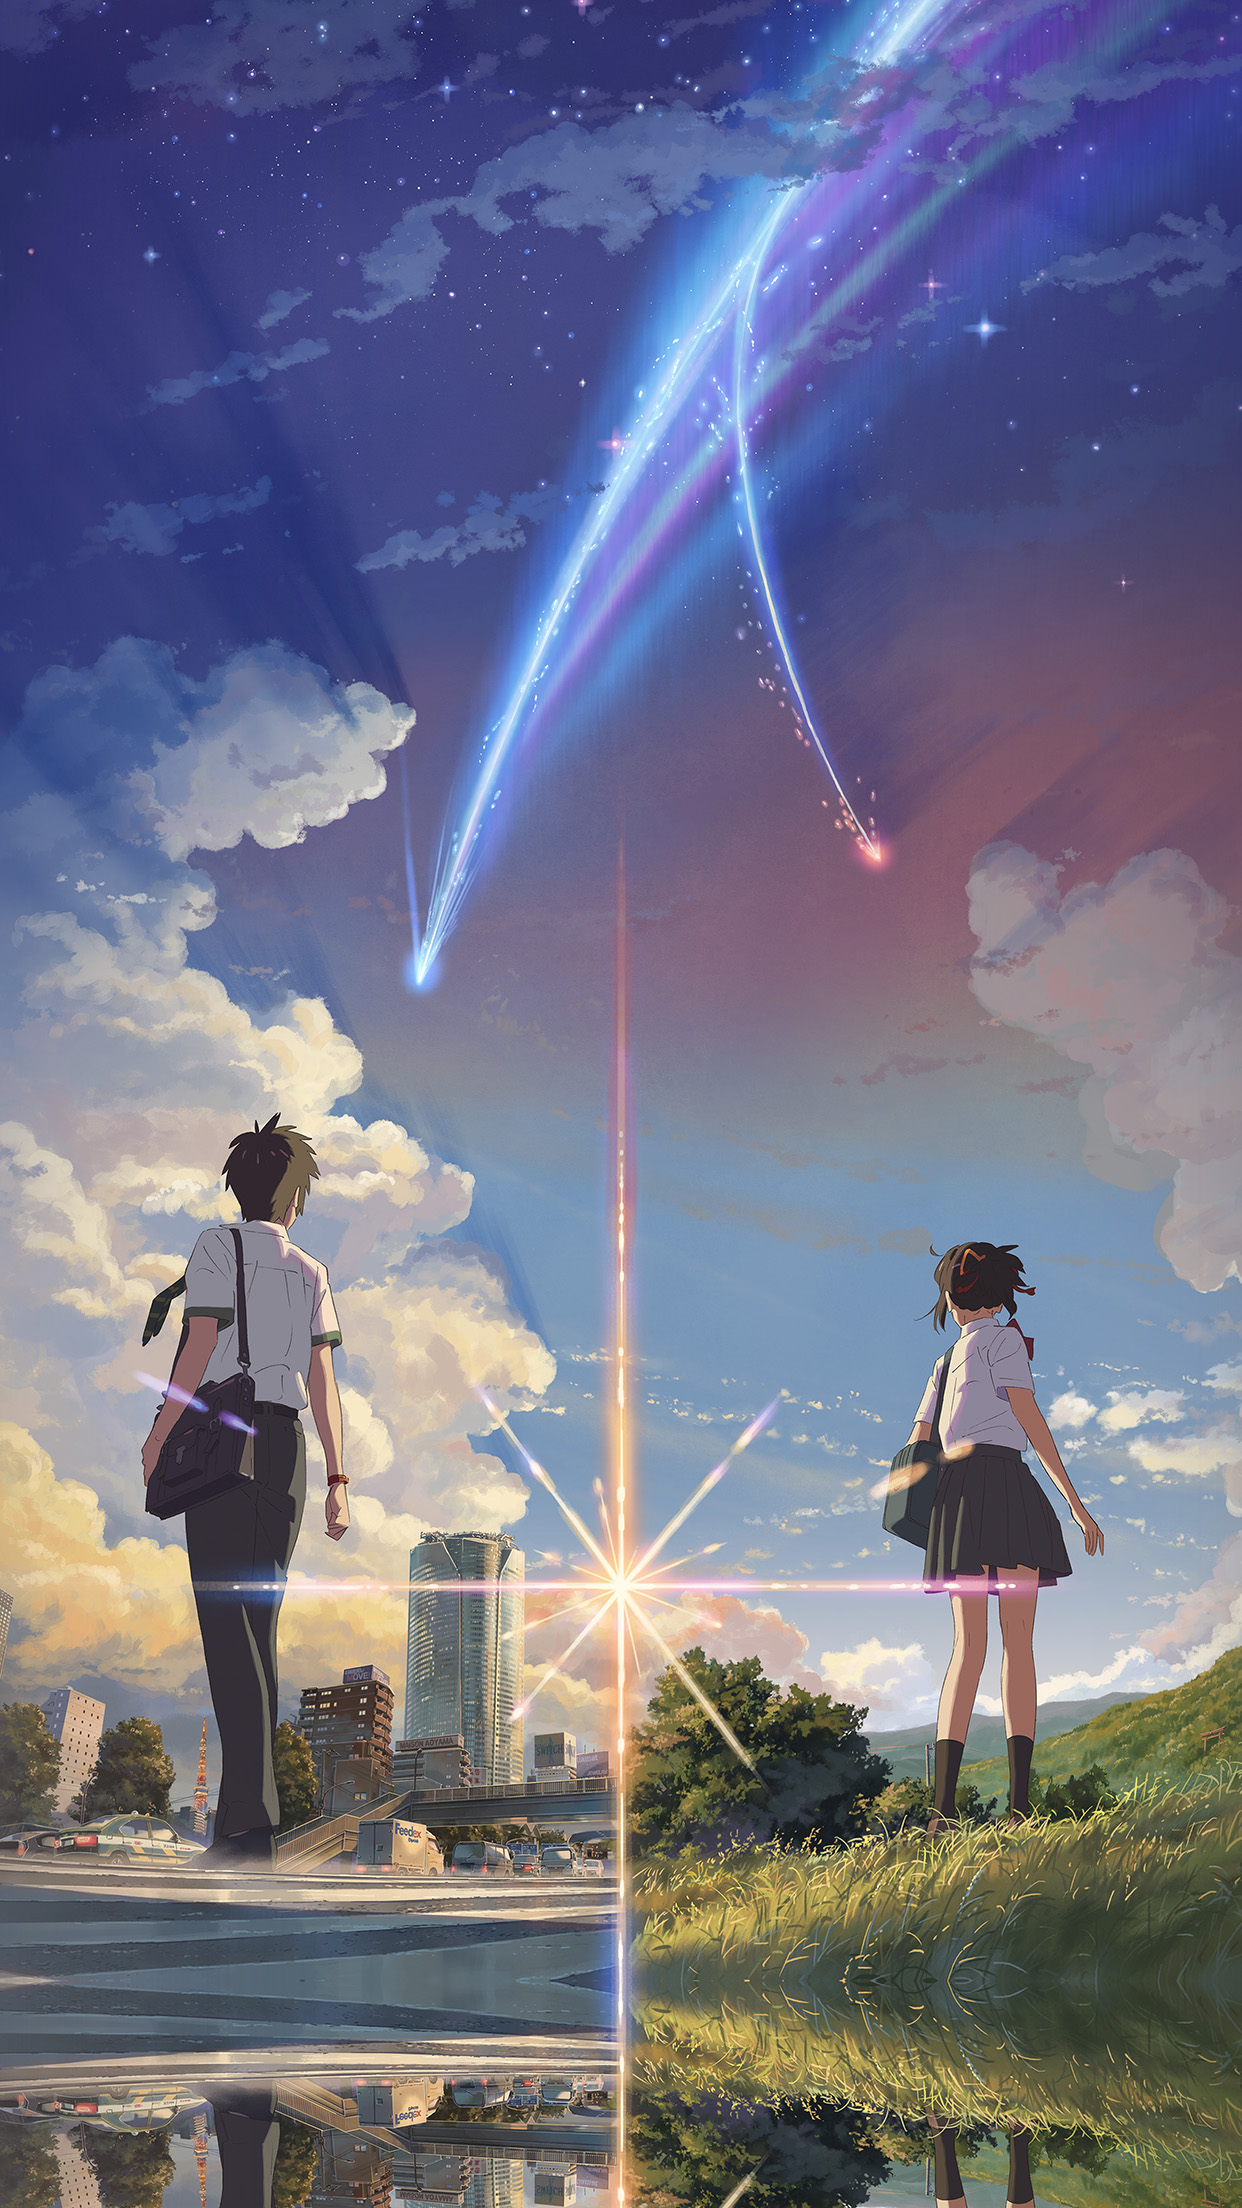 Anime Film Yourname Sky Illustration Art Android wallpaper